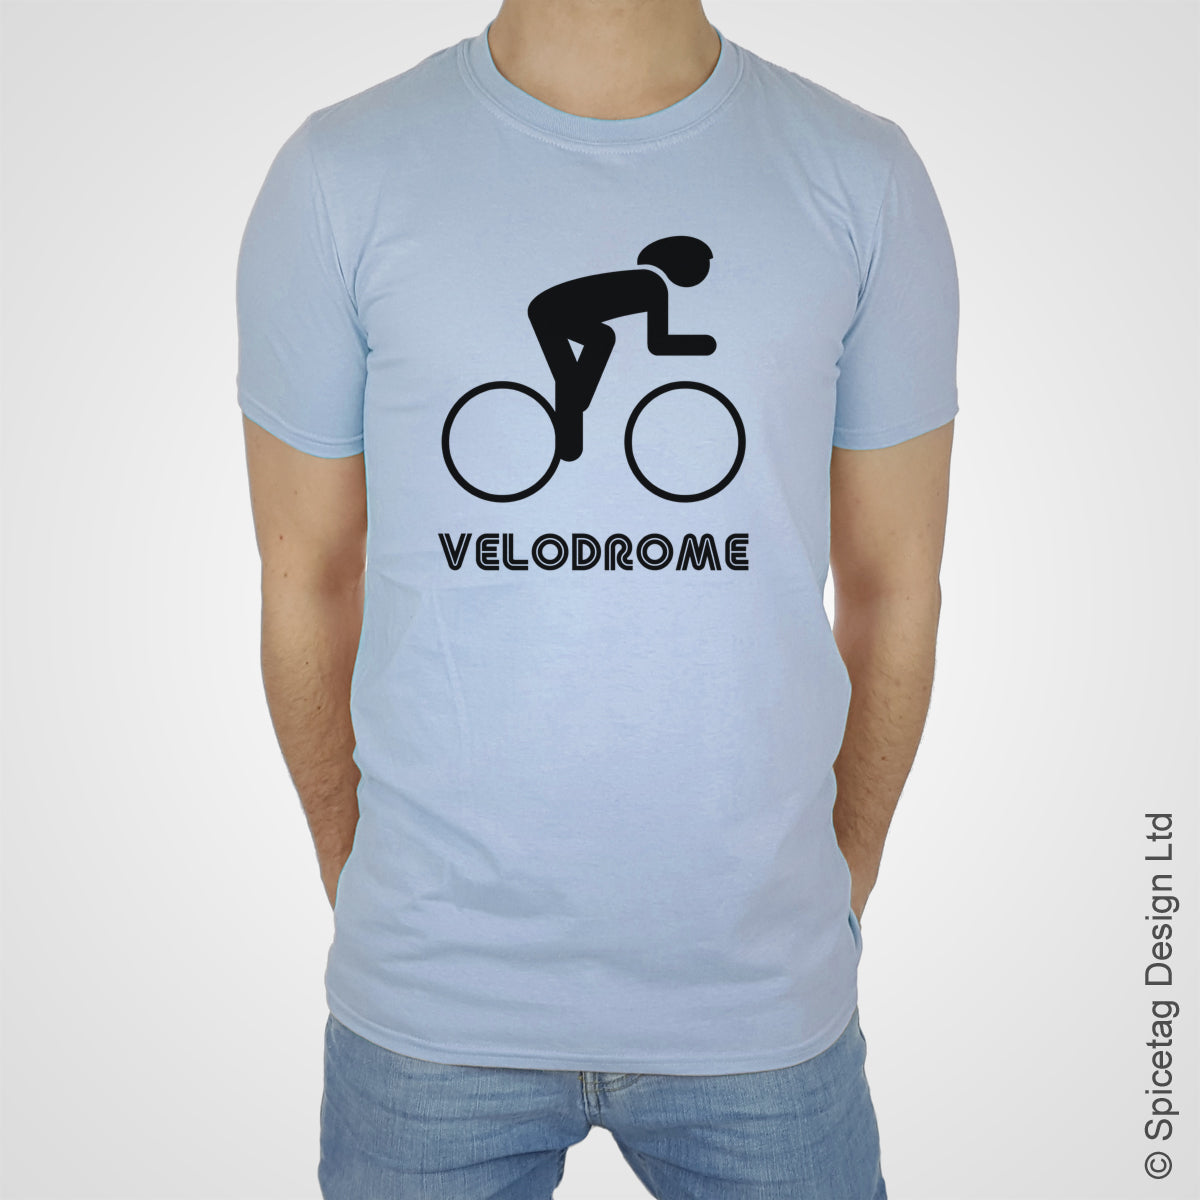 Velodrome cycling bike ride T-shirt Tshirt T shirt Tee clothing clothes fashion style sport sports fan olympics athletics track field health fitness world competition champion